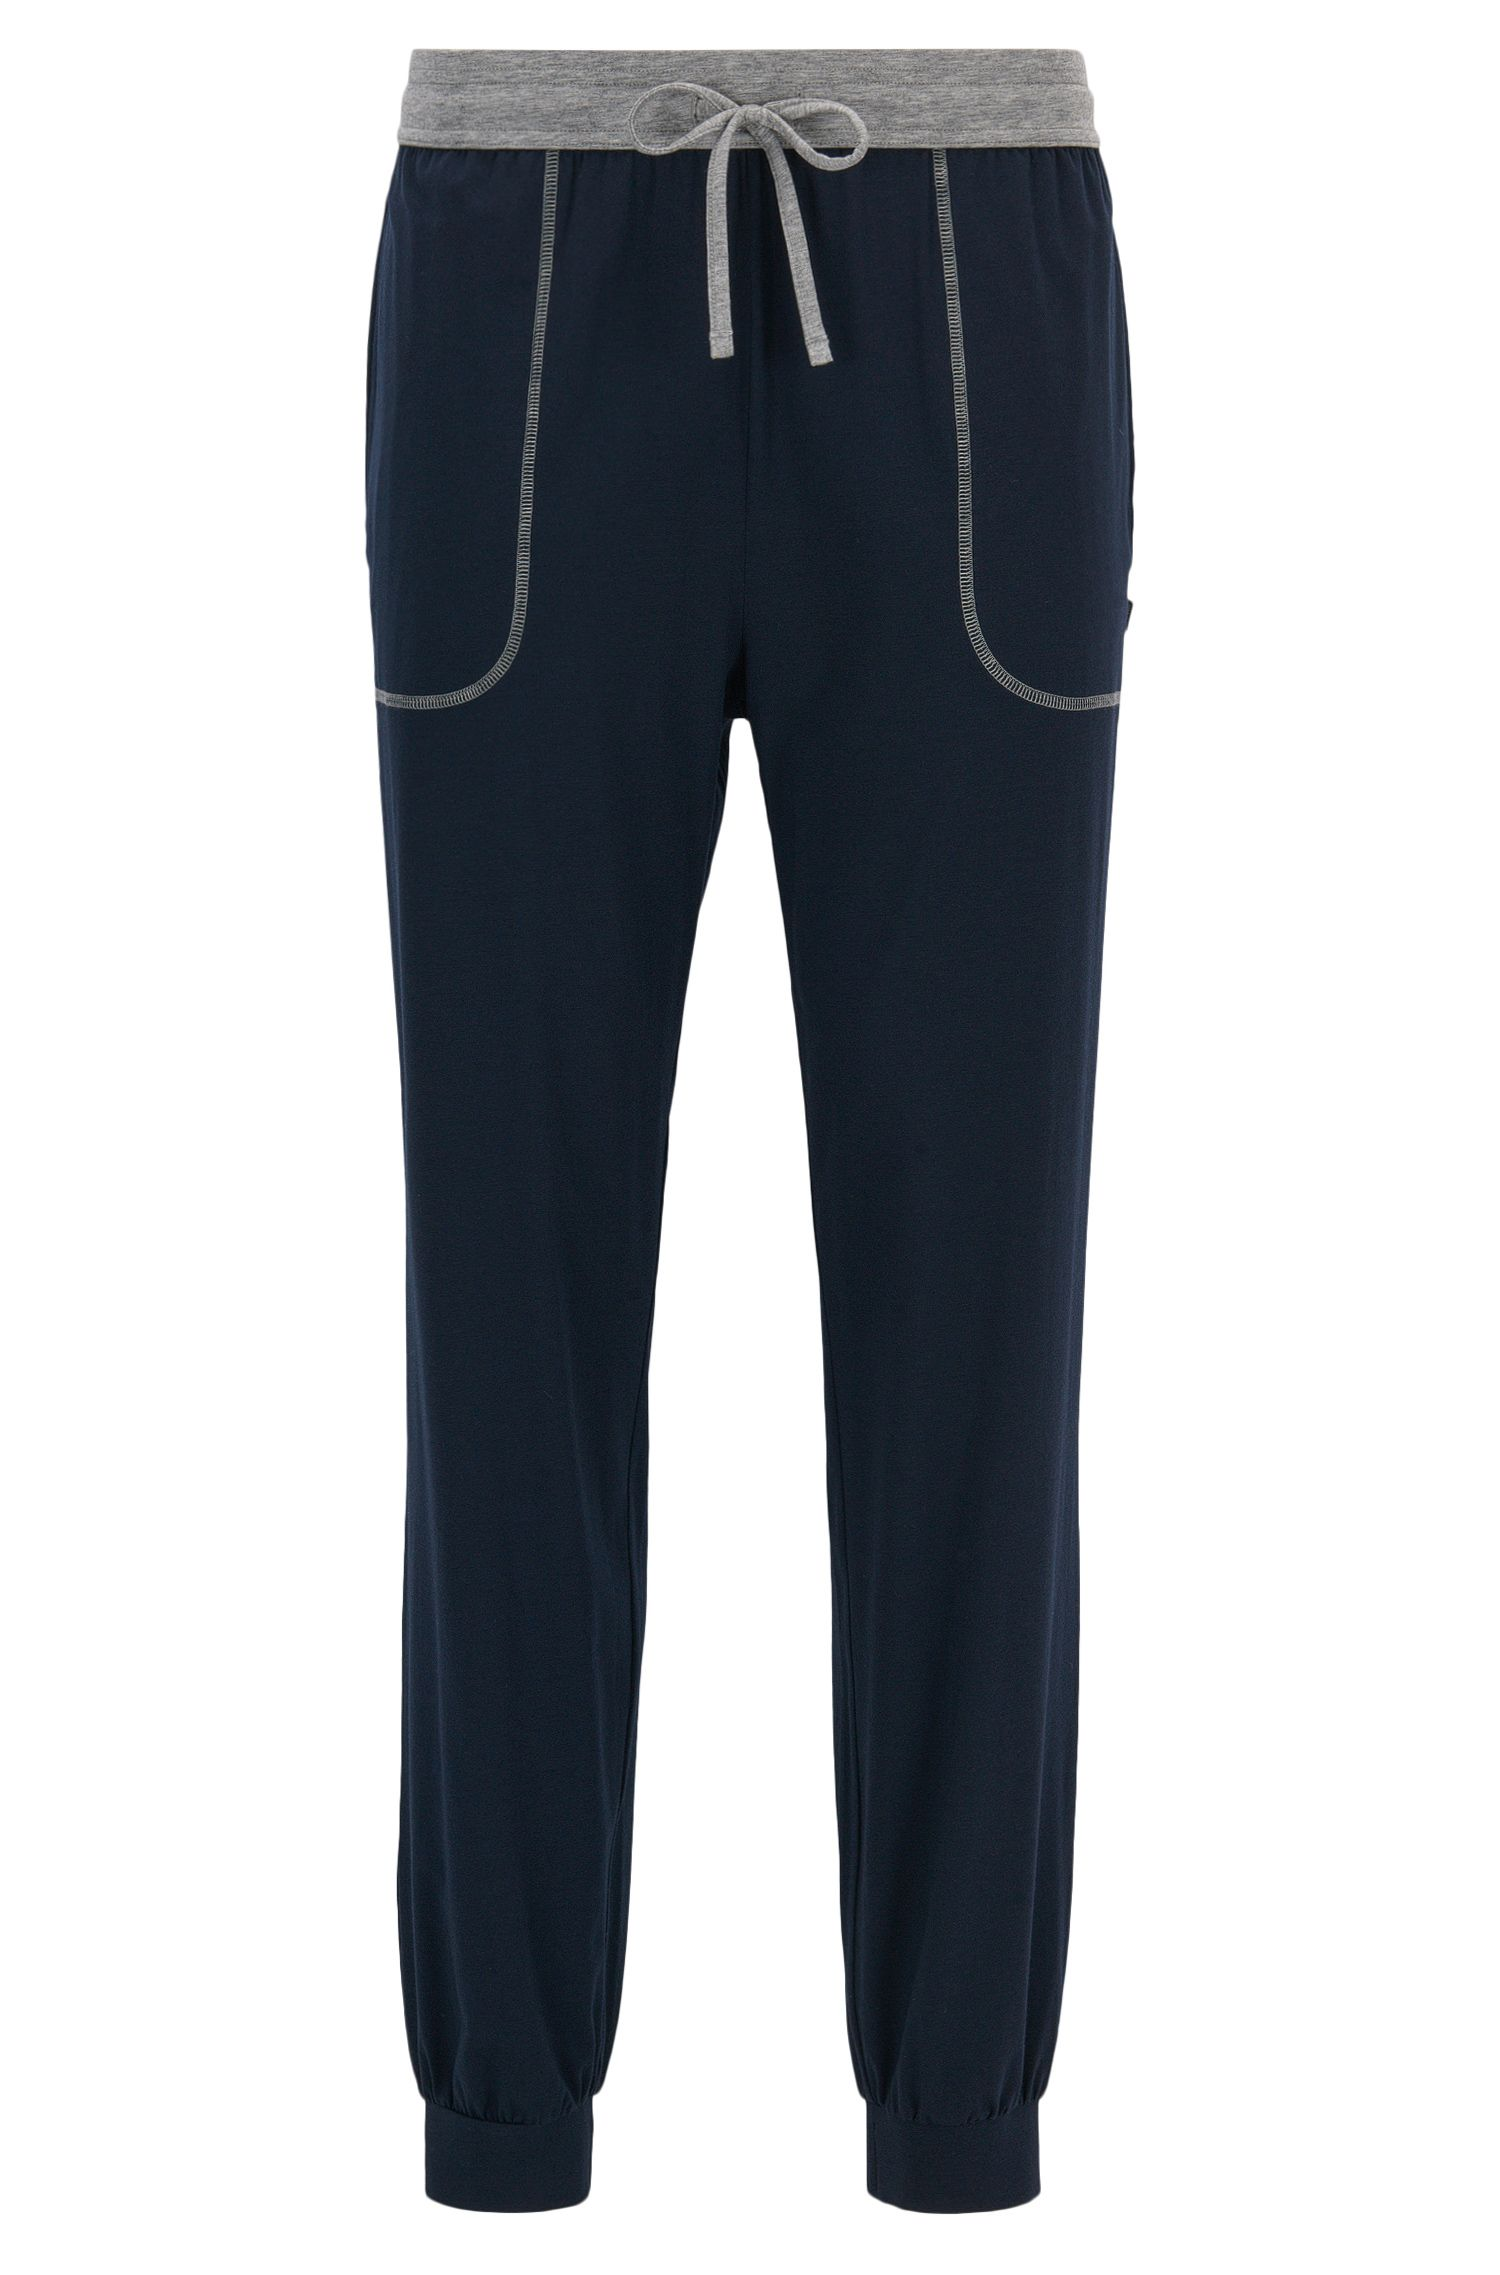 Cuffed hem pyjama bottoms in stretch cotton-blend jersey